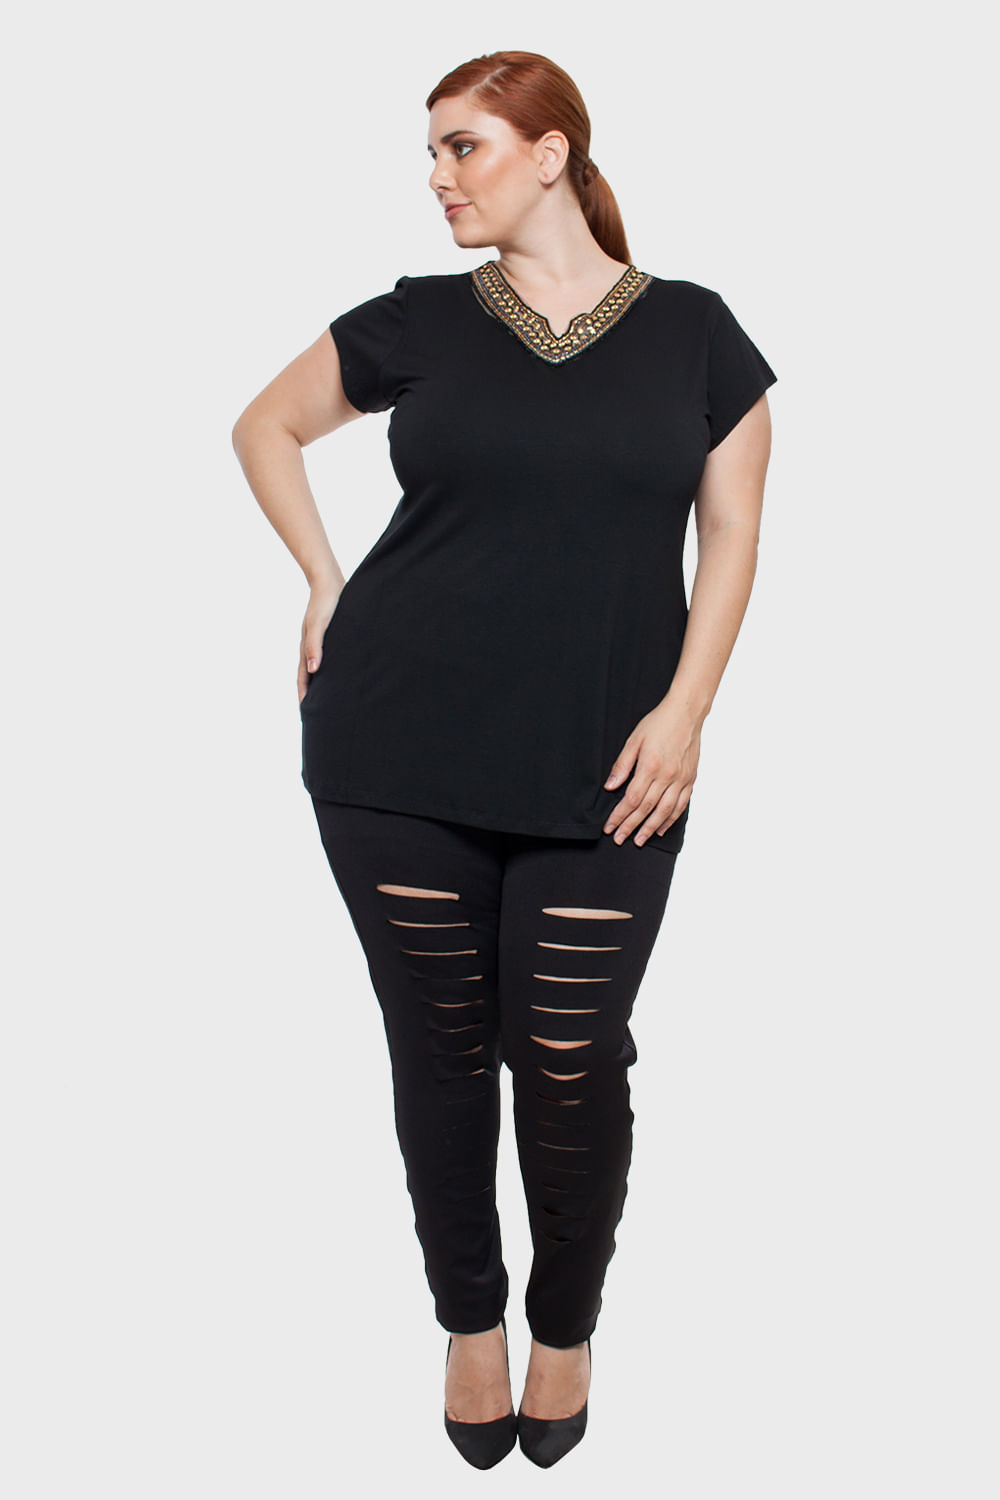 Calca-Legging-Filetada-Plus-Size_4